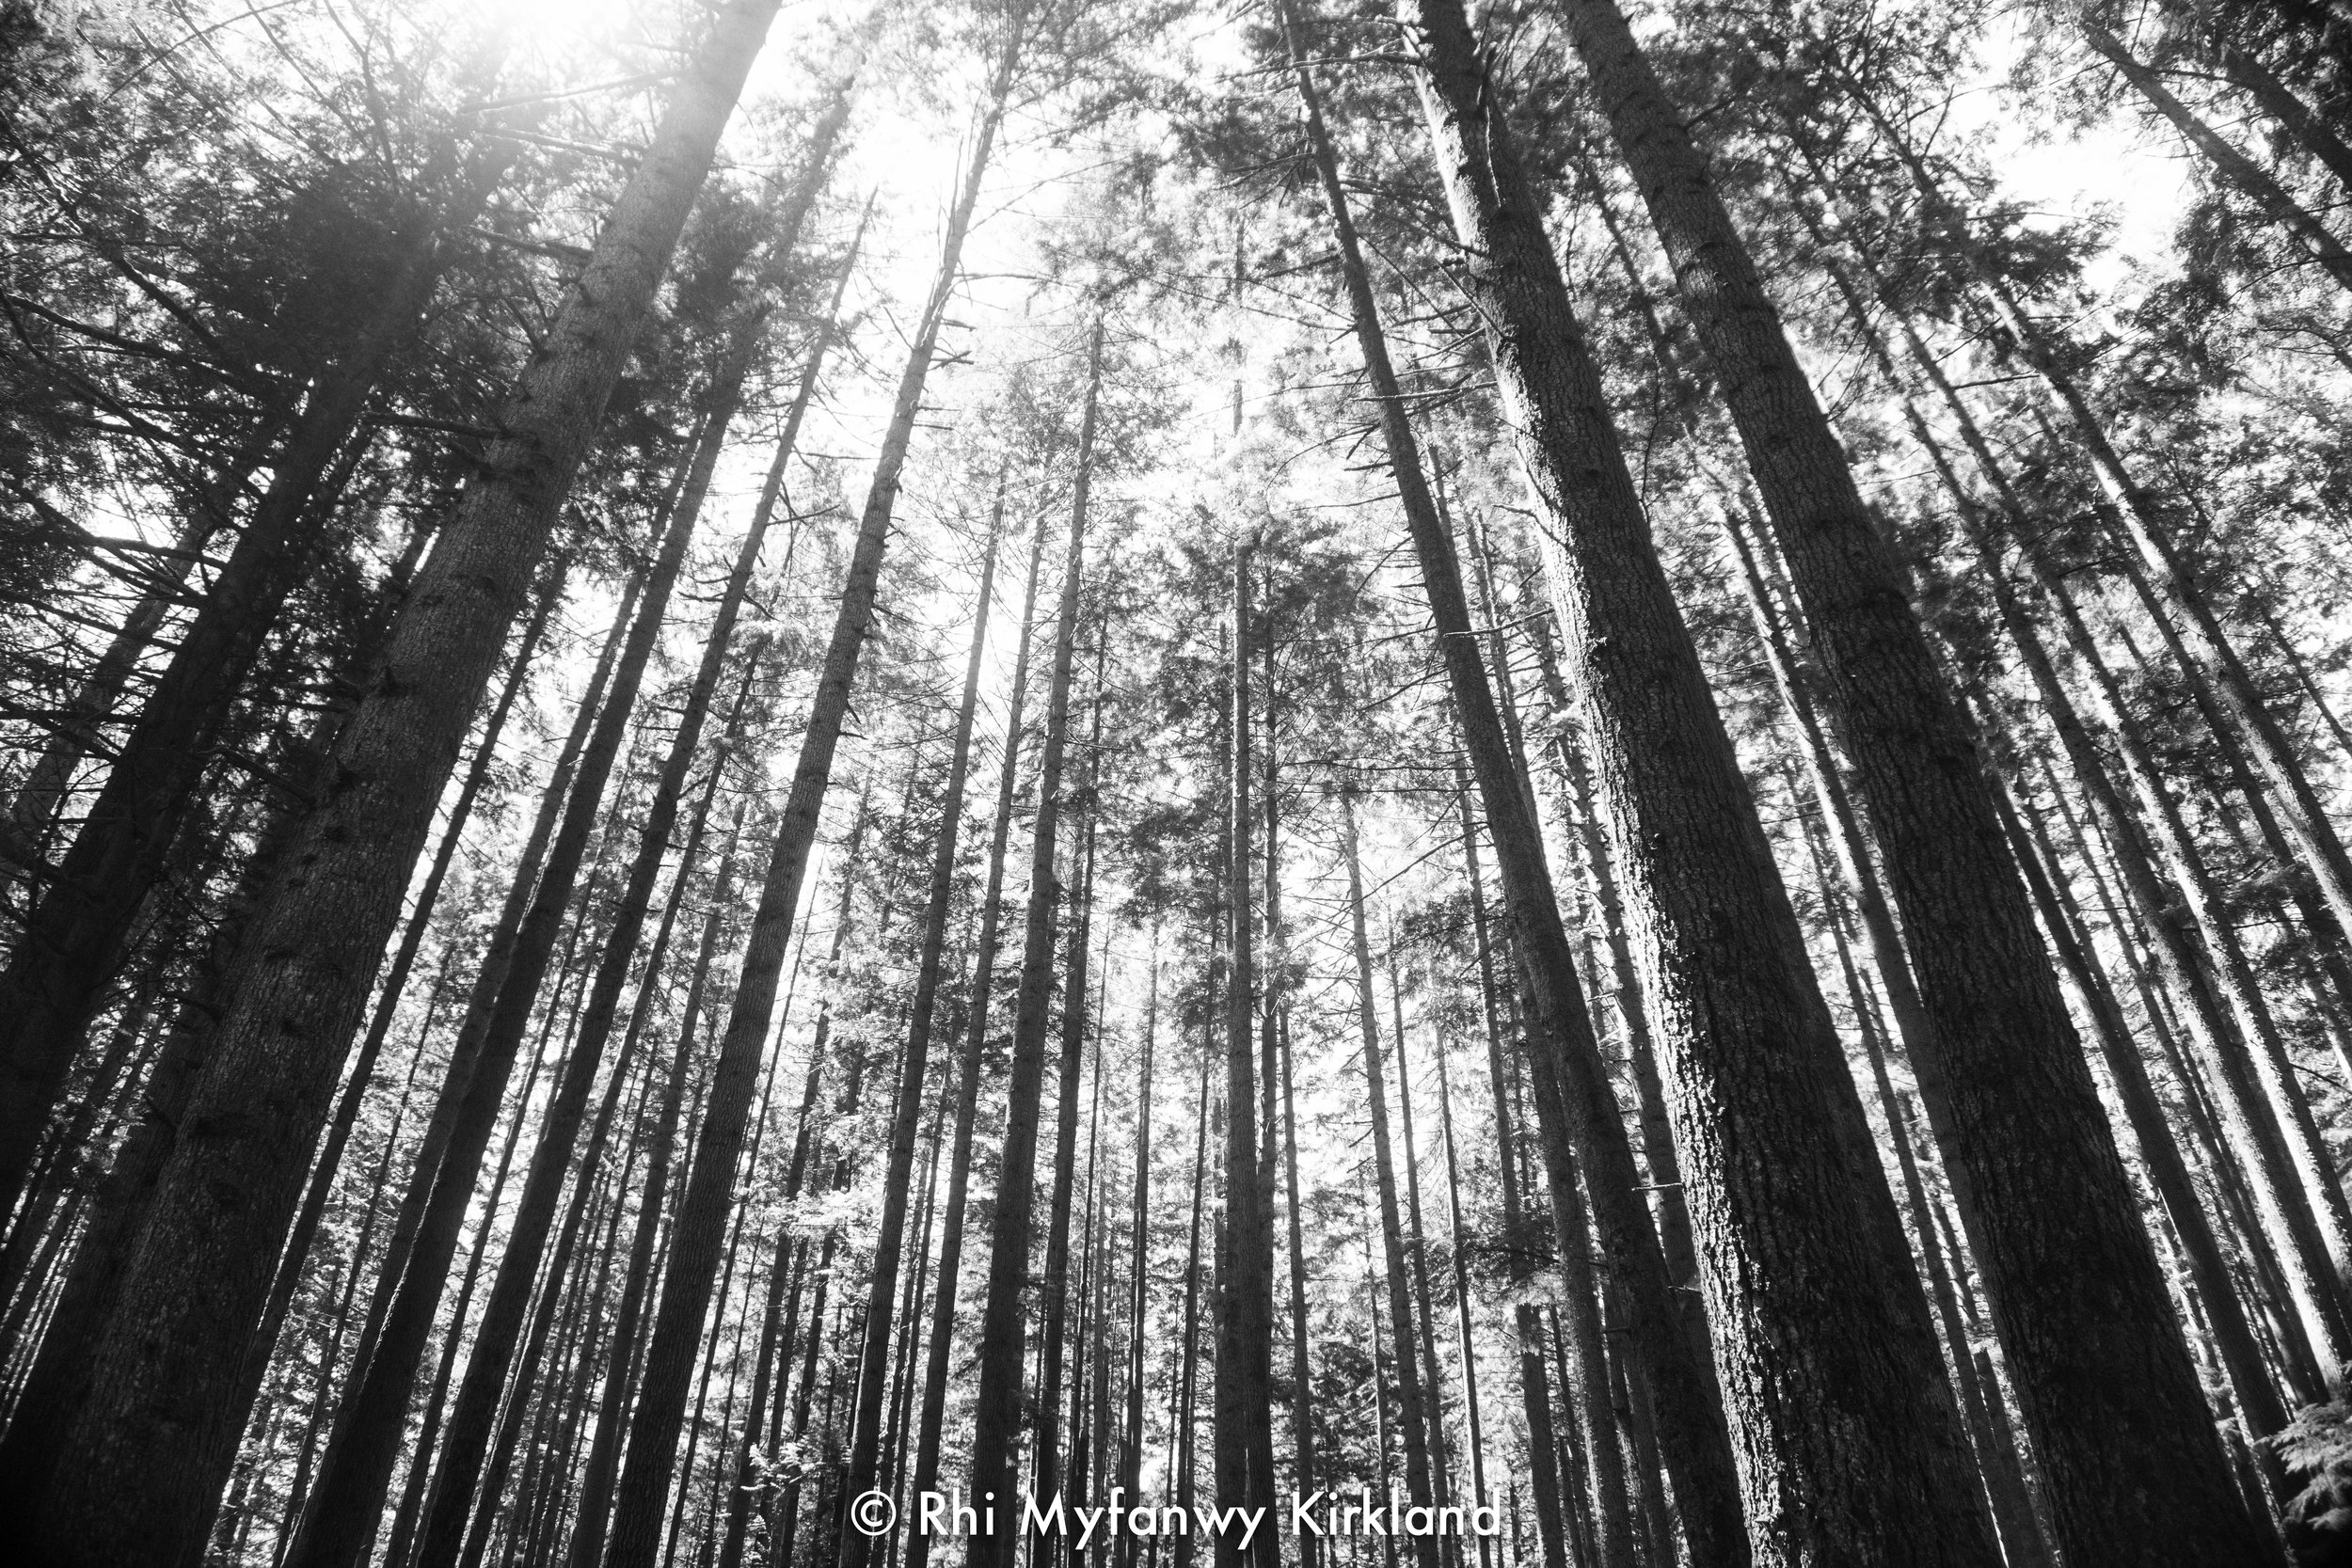 2018.07.13 trees bw watermark-4.jpg